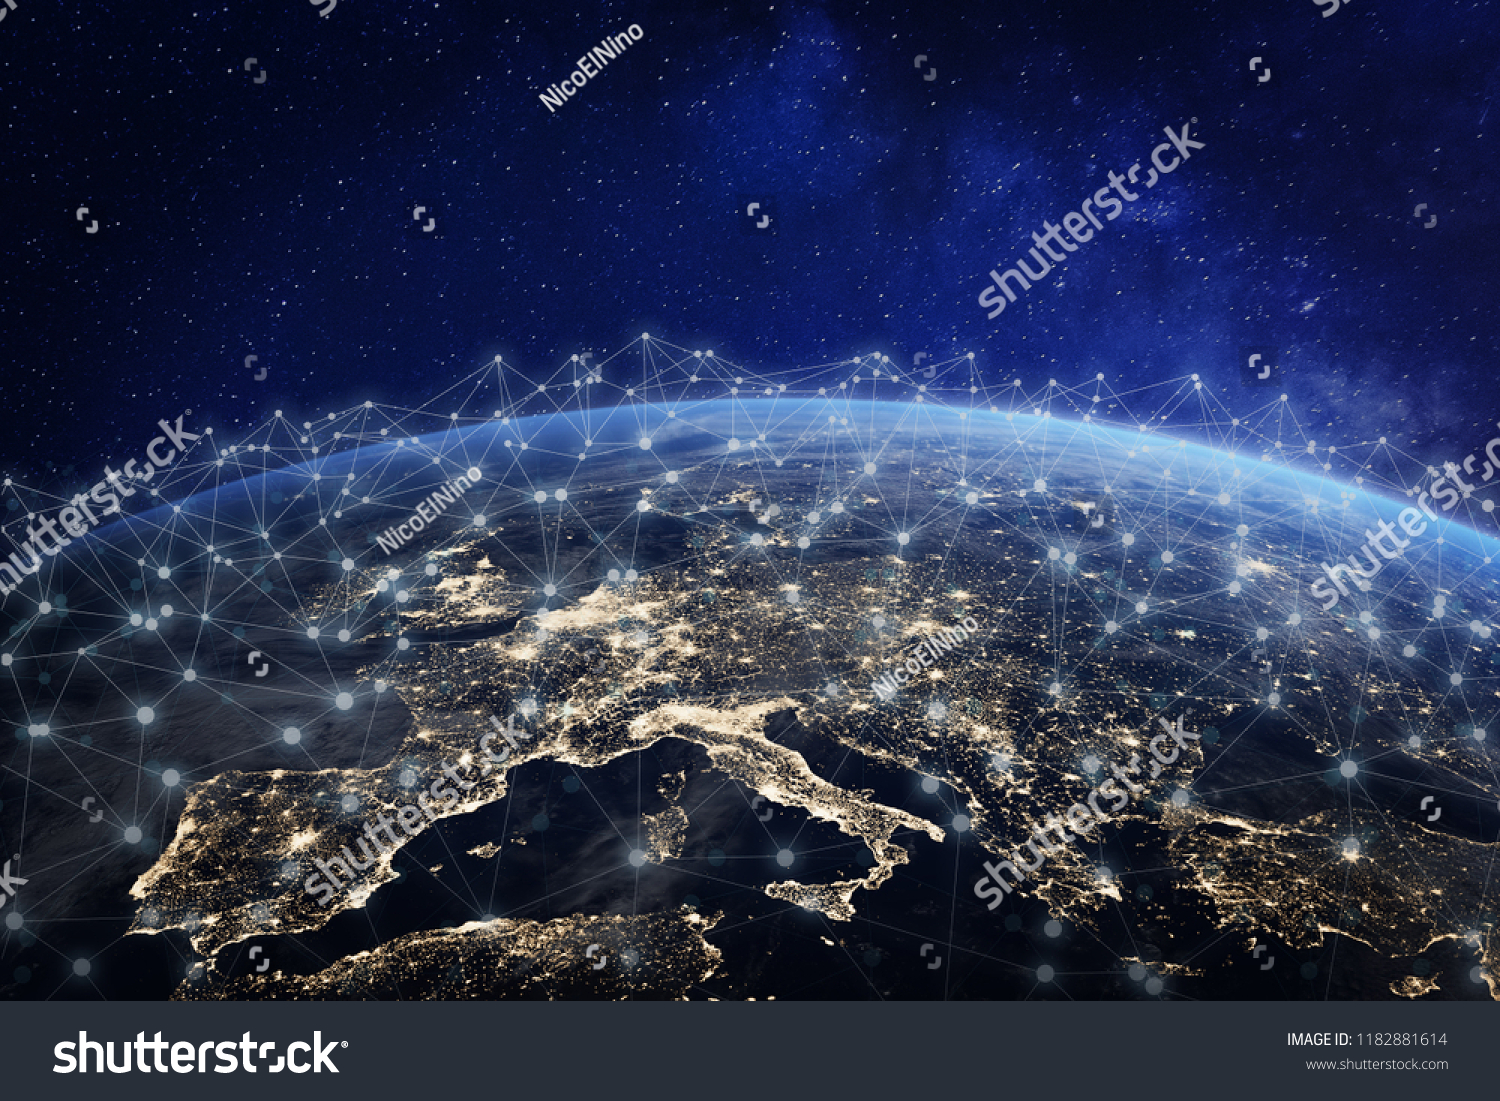 Réseau européen de télécommunications connecté à travers l'Europe, la France, l'Allemagne, le Royaume-Uni, l'Italie, concept d'internet et la technologie de communication mondiale pour la finance, blockchain ou IoT, éléments de la NASA #1182881614